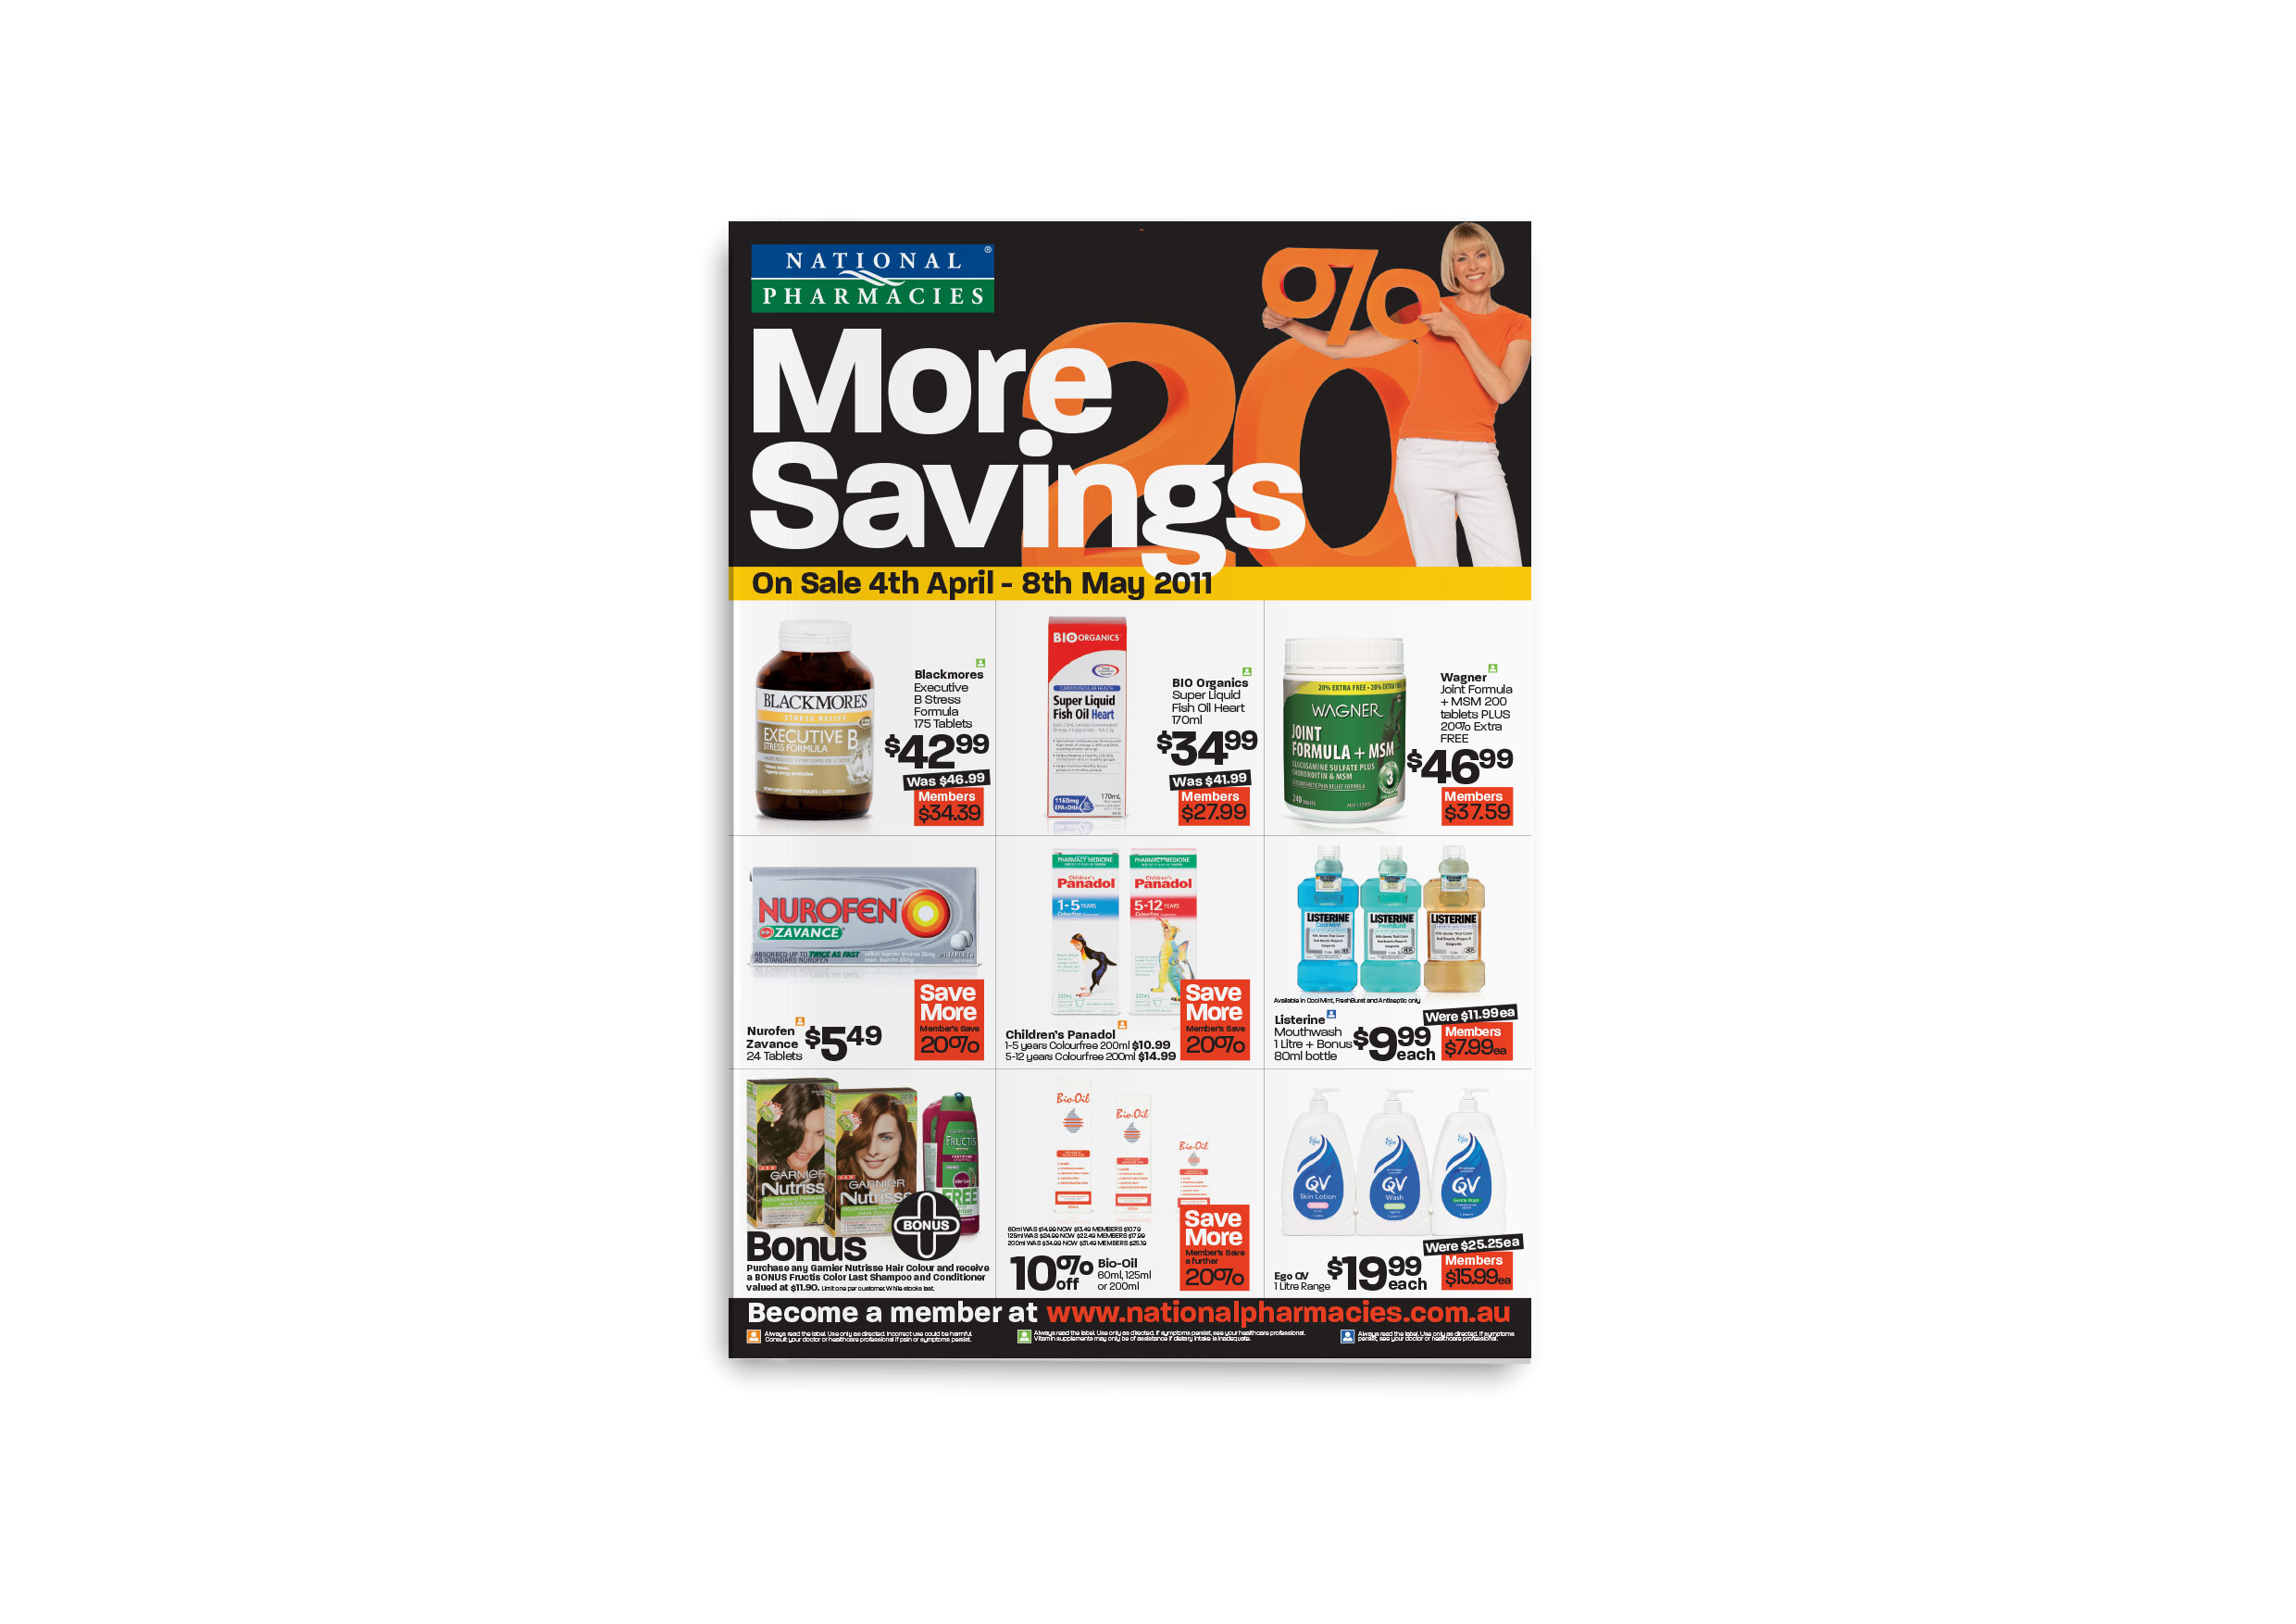 MORE-SAVINGS_11